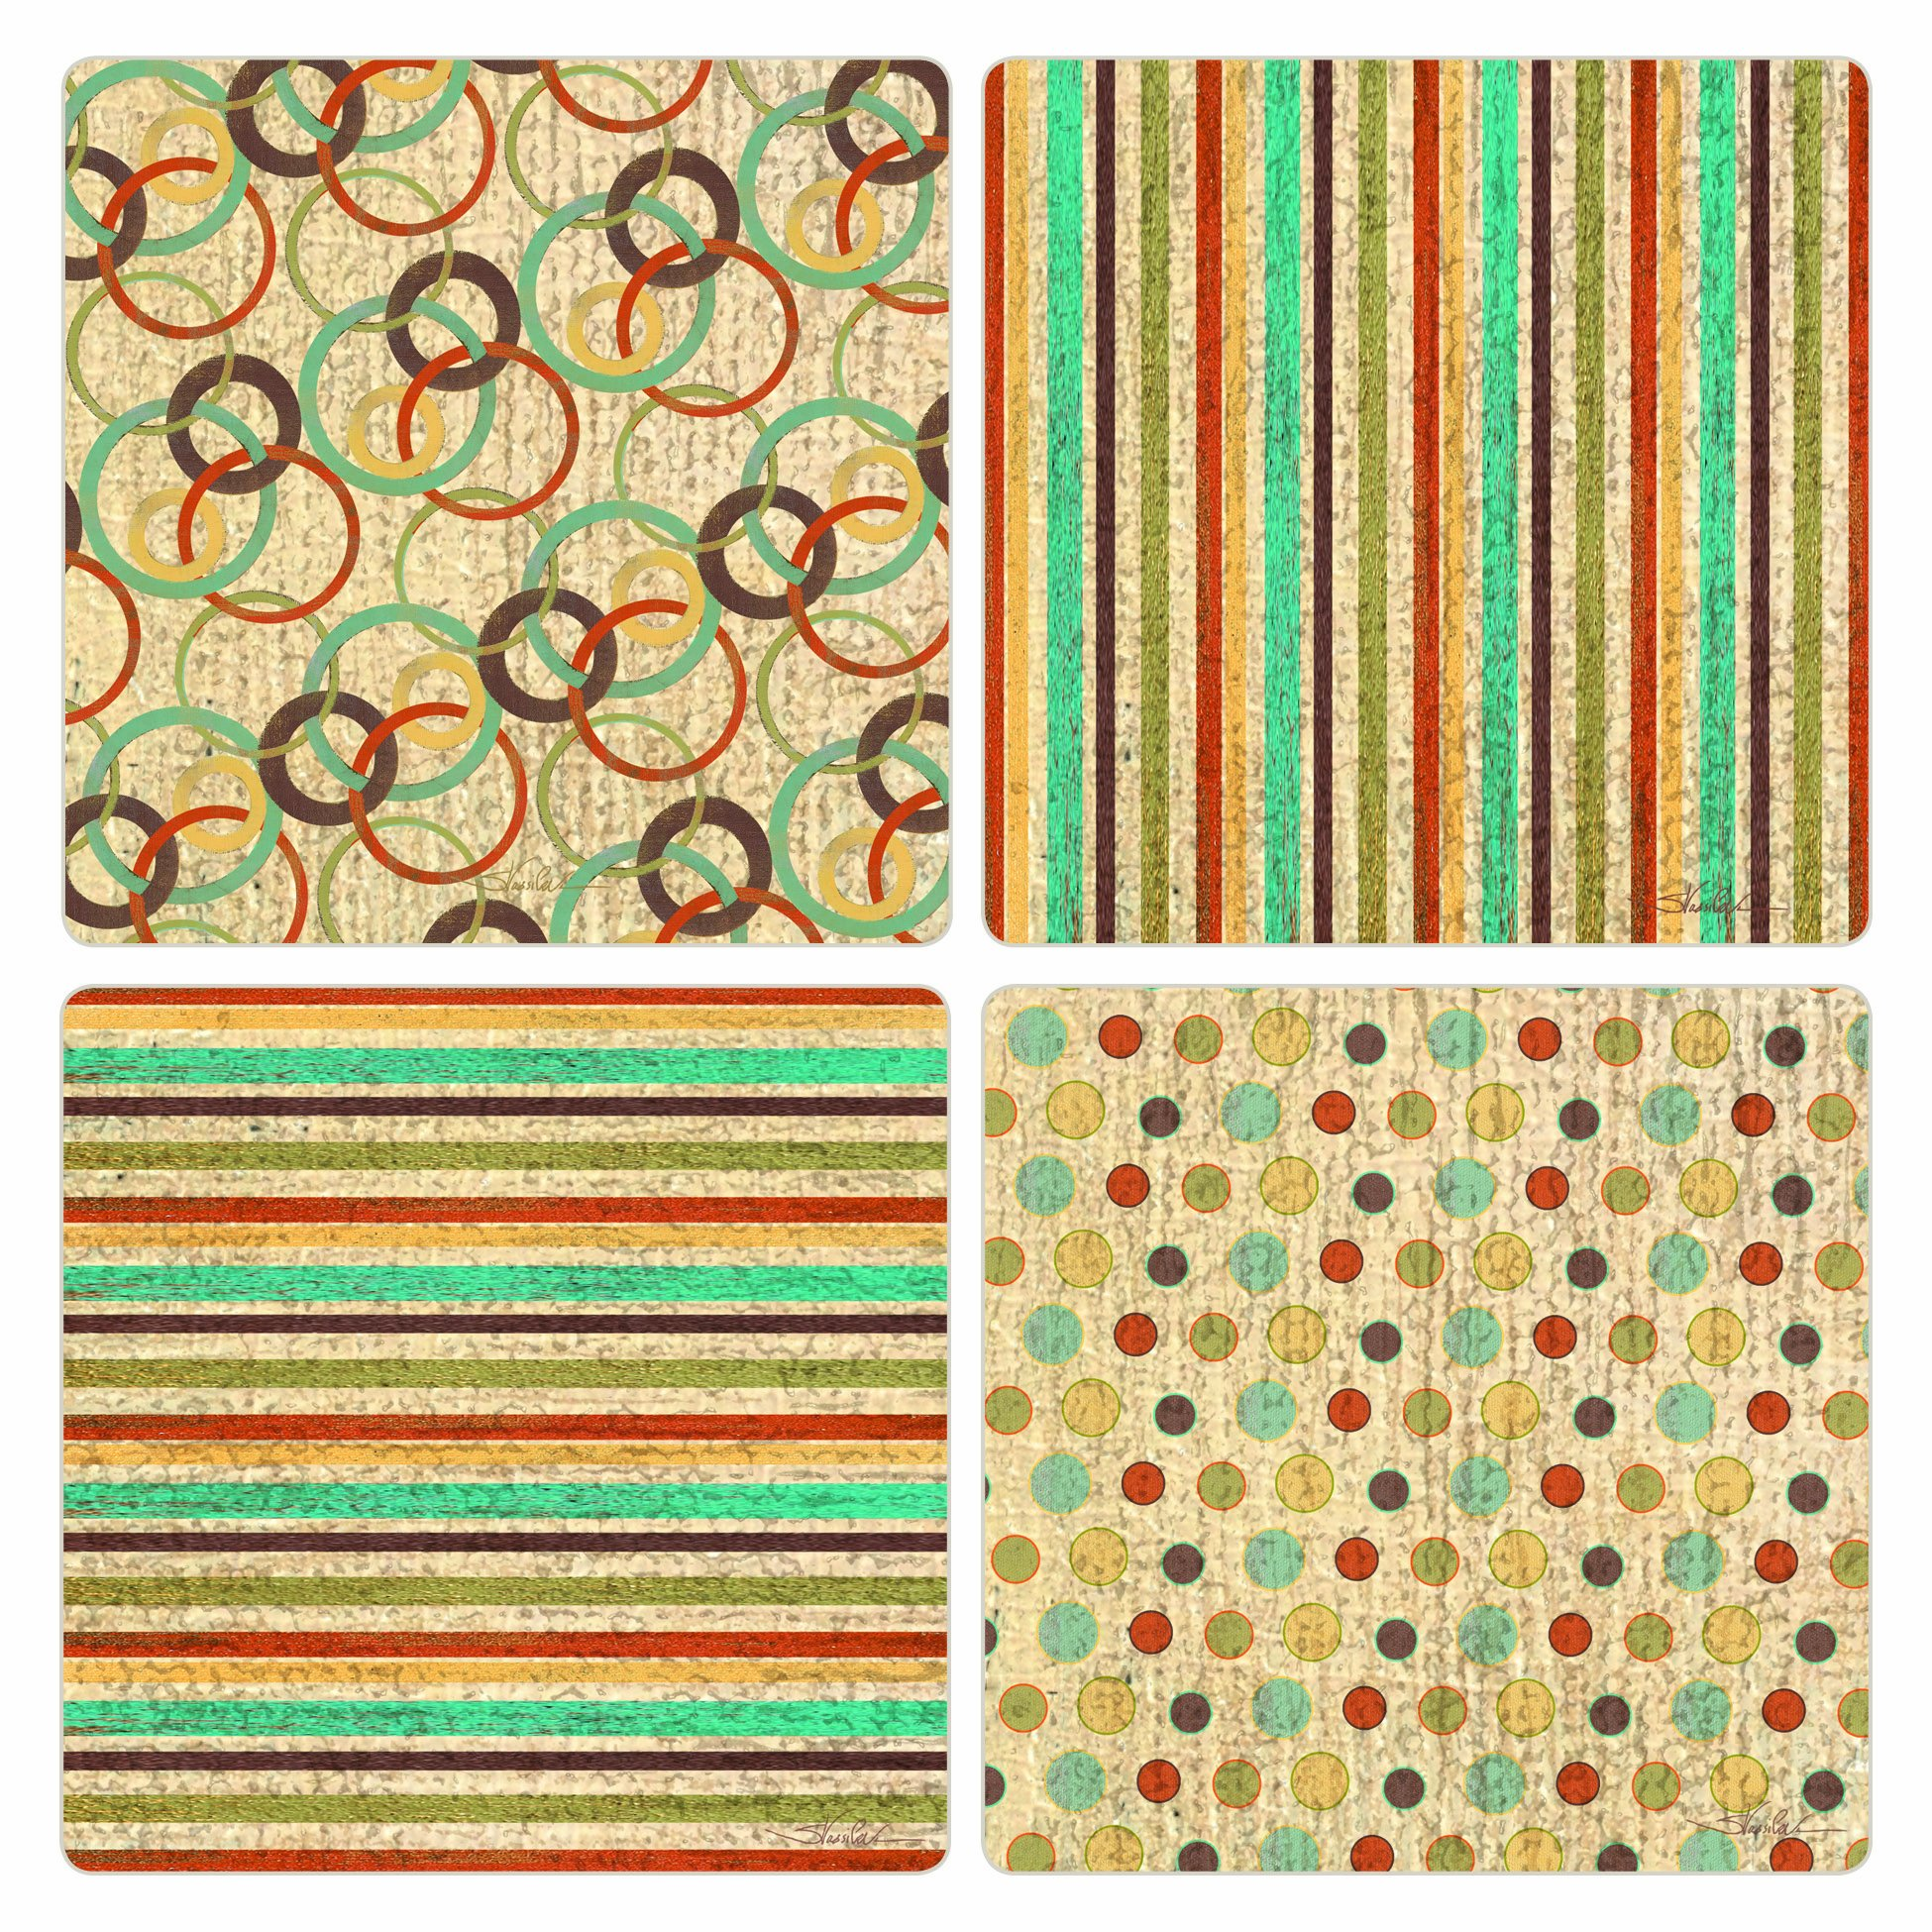 4-1//4-Inch,Jewel Flower Patterns CoasterStone AS2630 Absorbent Coasters Set of 4